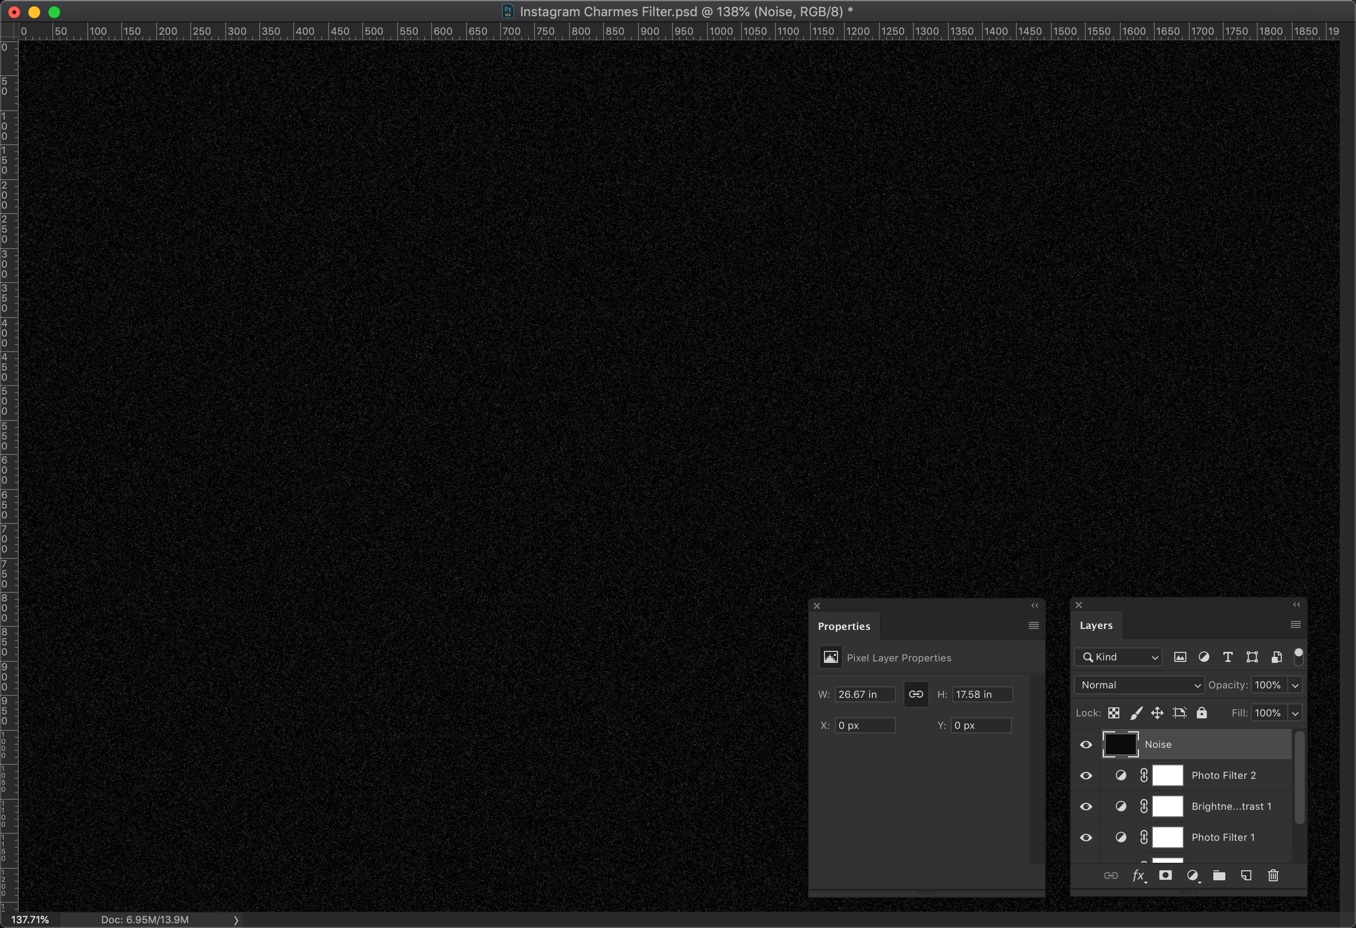 13 - Create Instagram Charmes Filter in Photoshop [Action Included]